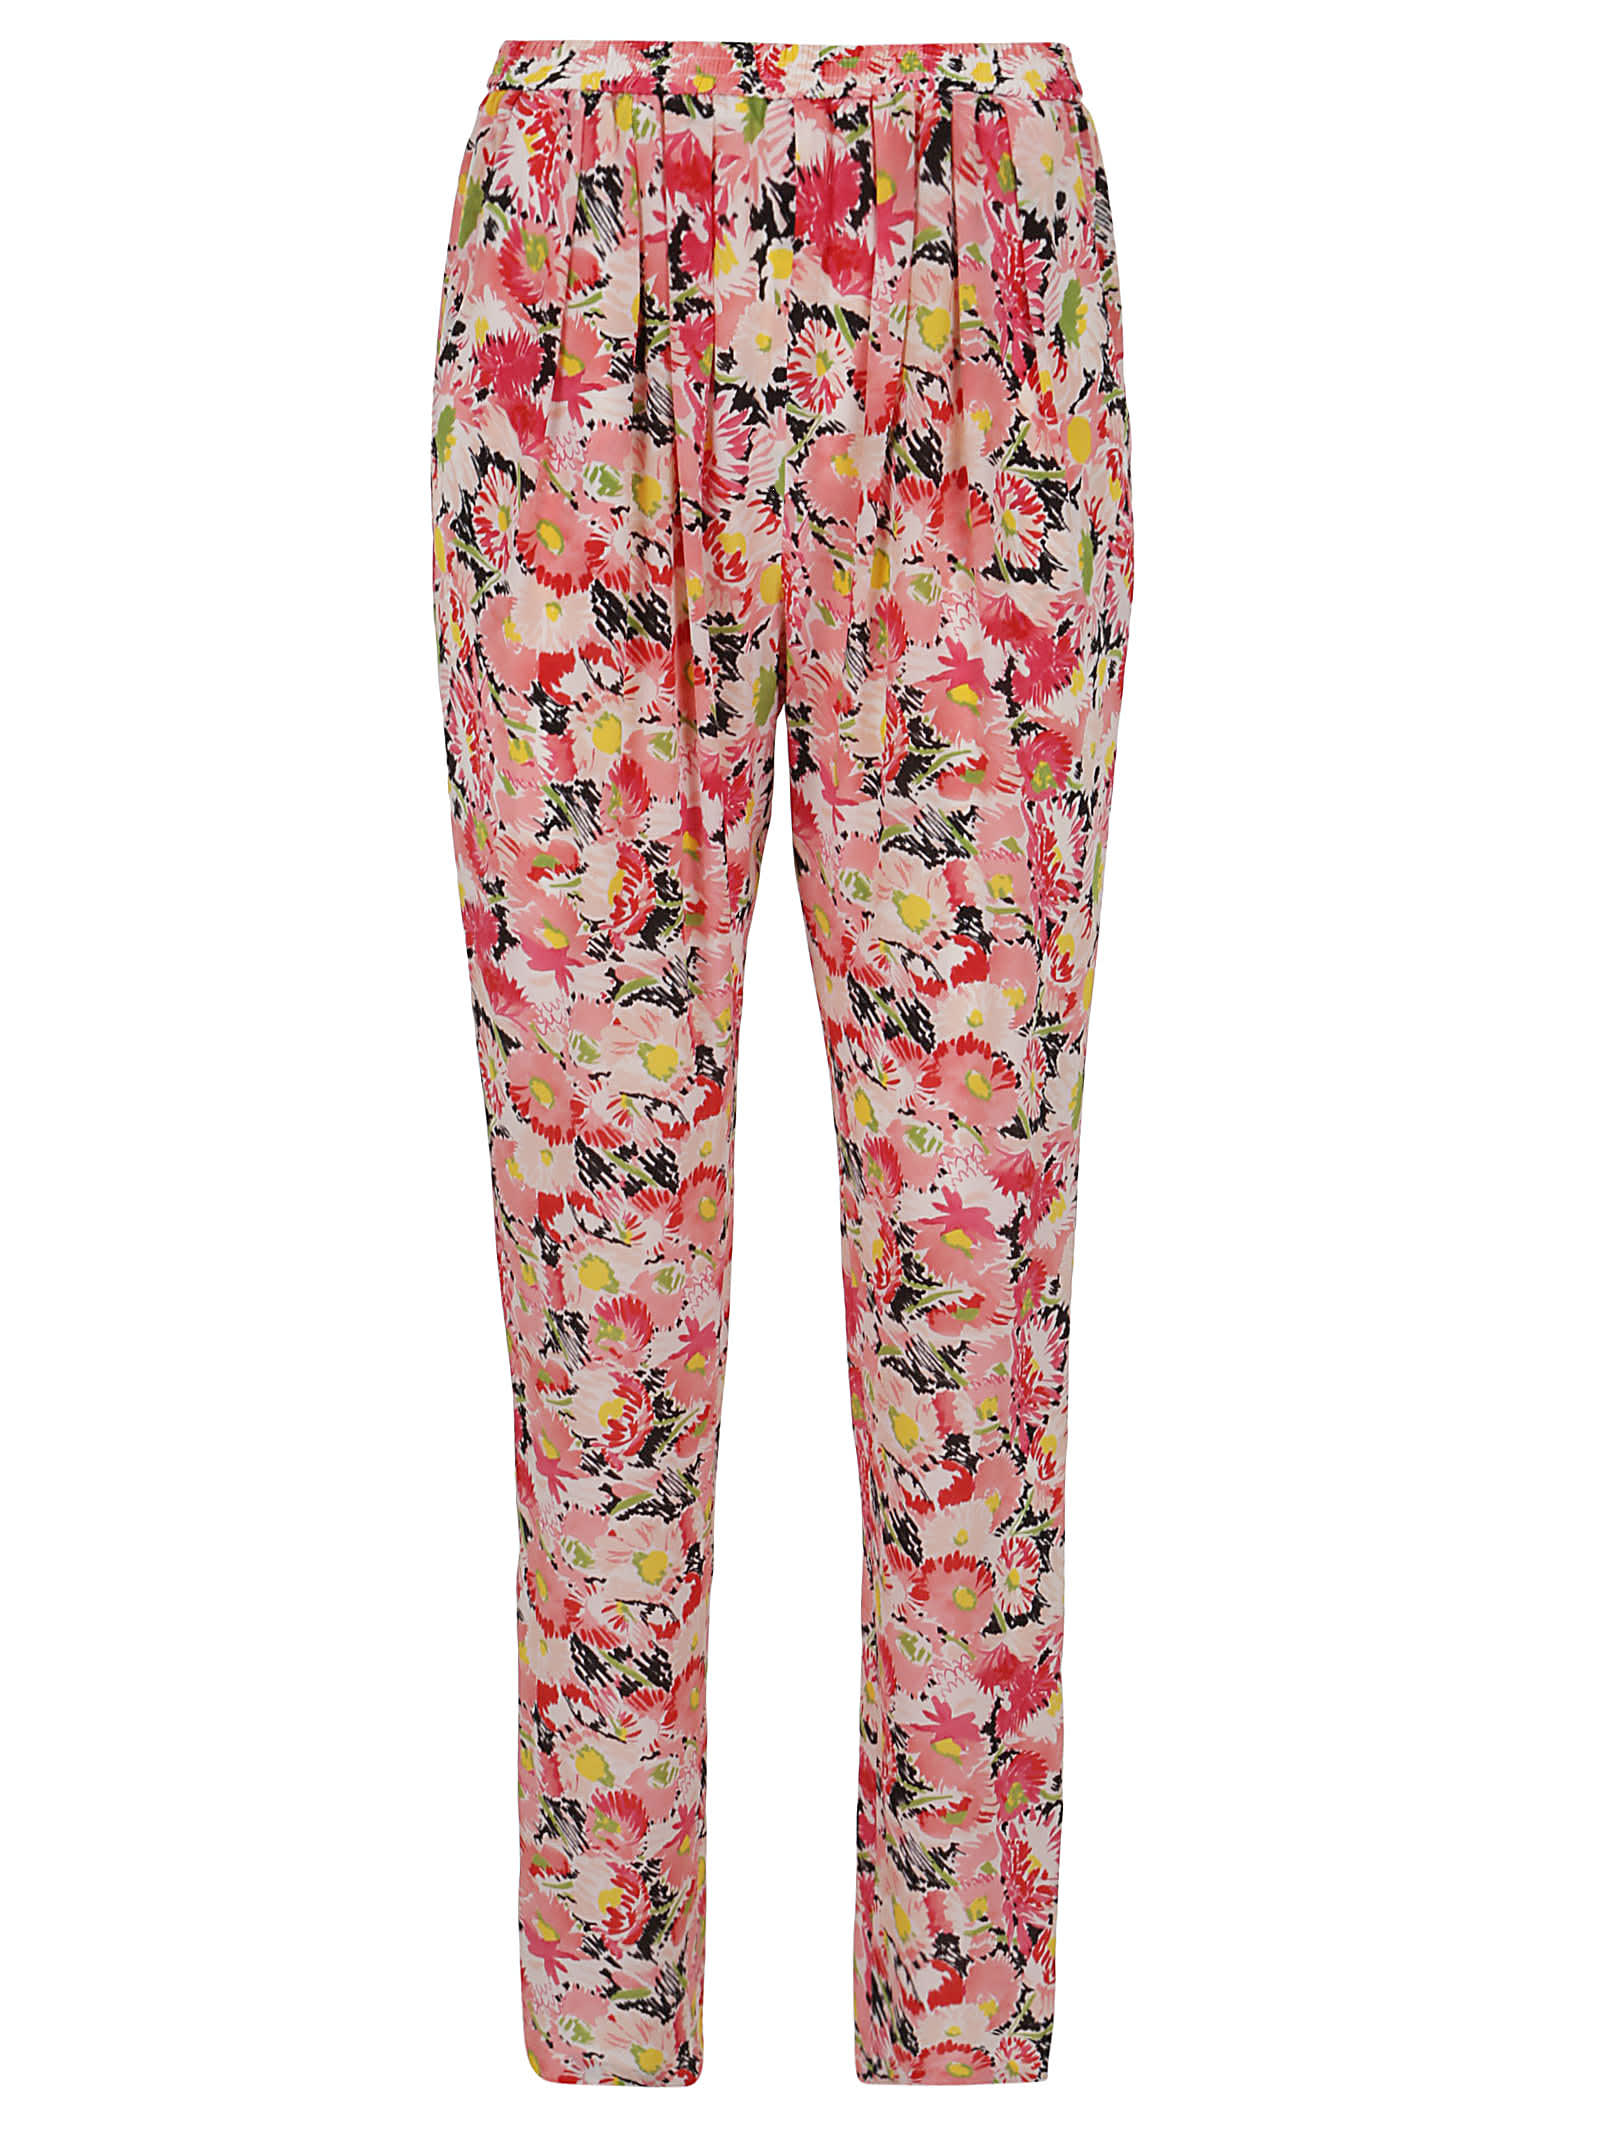 STELLA MCCARTNEY CHRISTINE TROUSERS